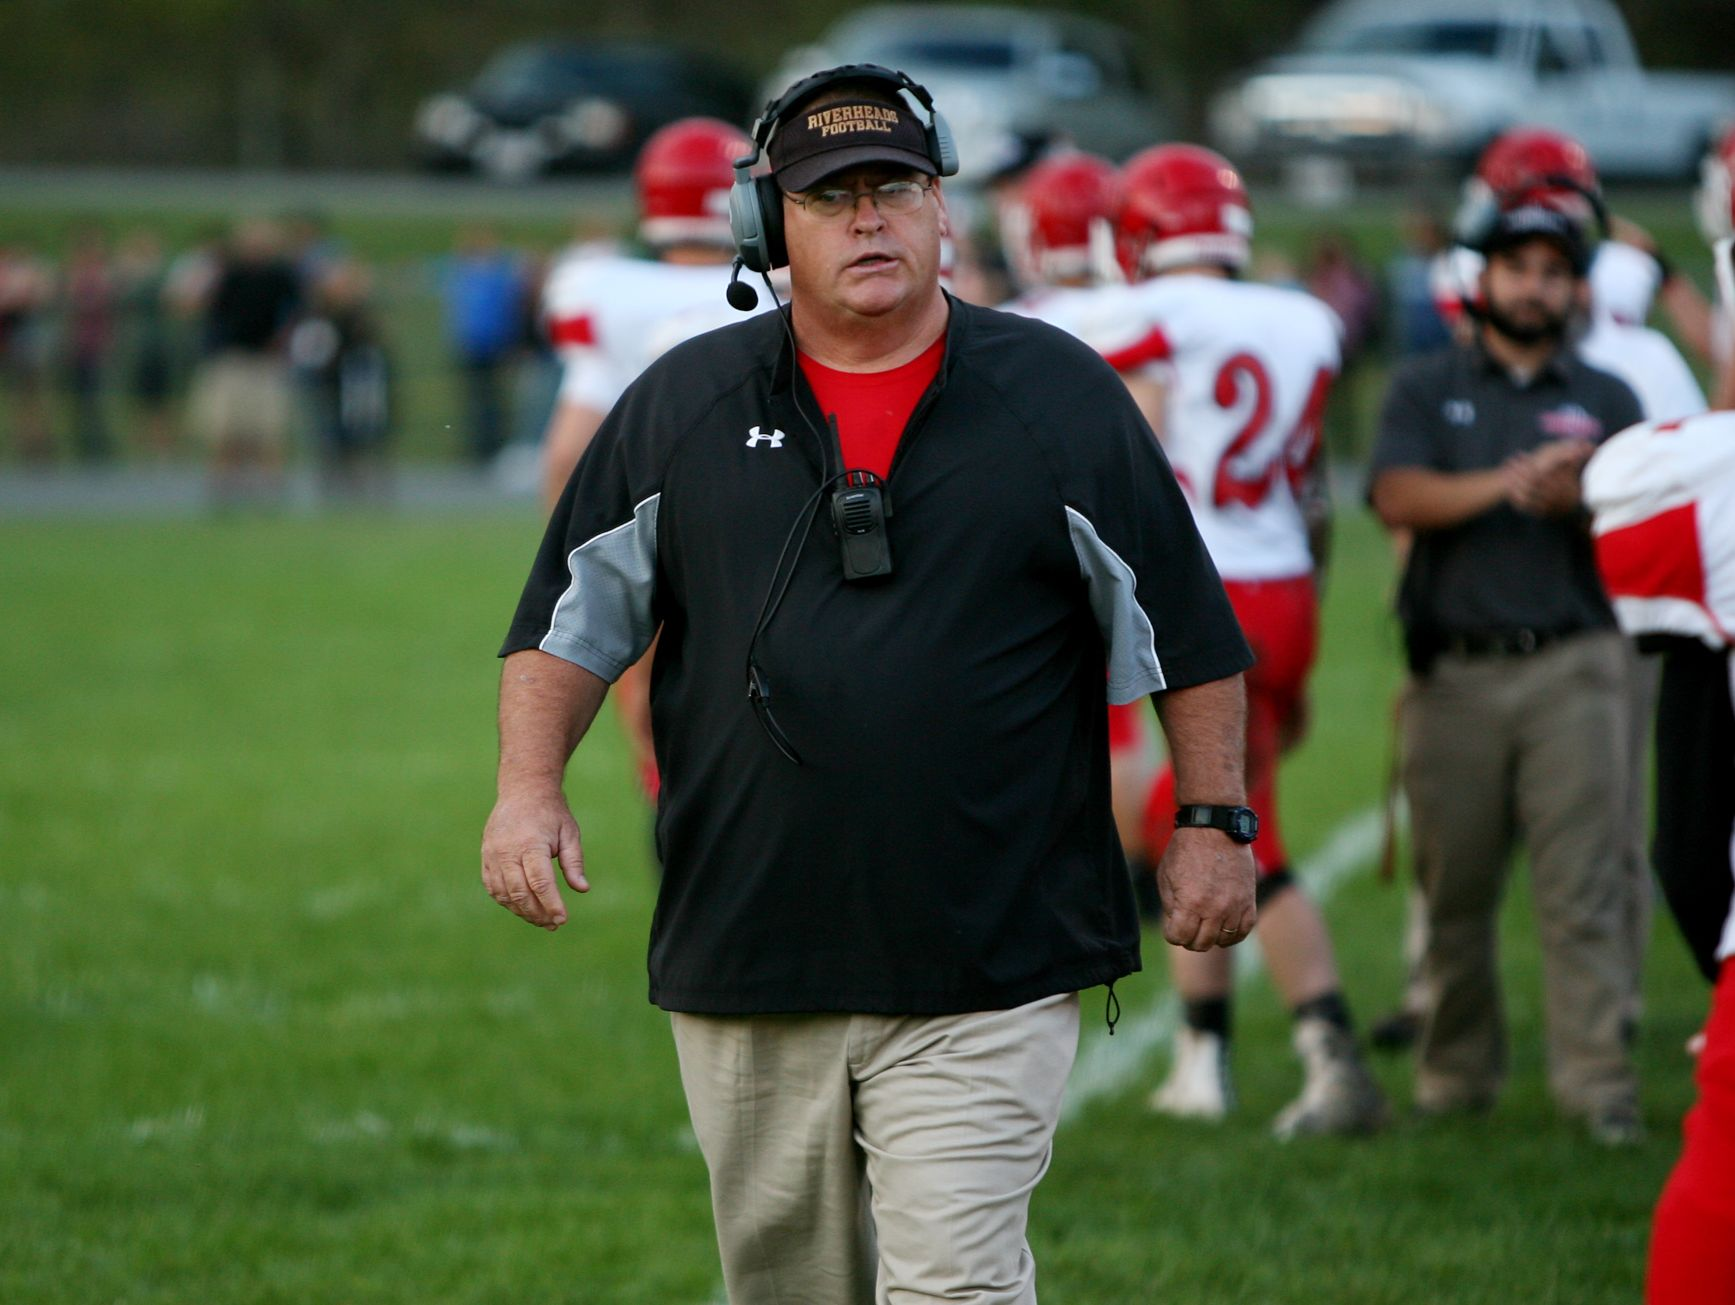 This season, Riverheads head coach Robert Casto has guided the Gladiators to its fifth state final berth since 2000.